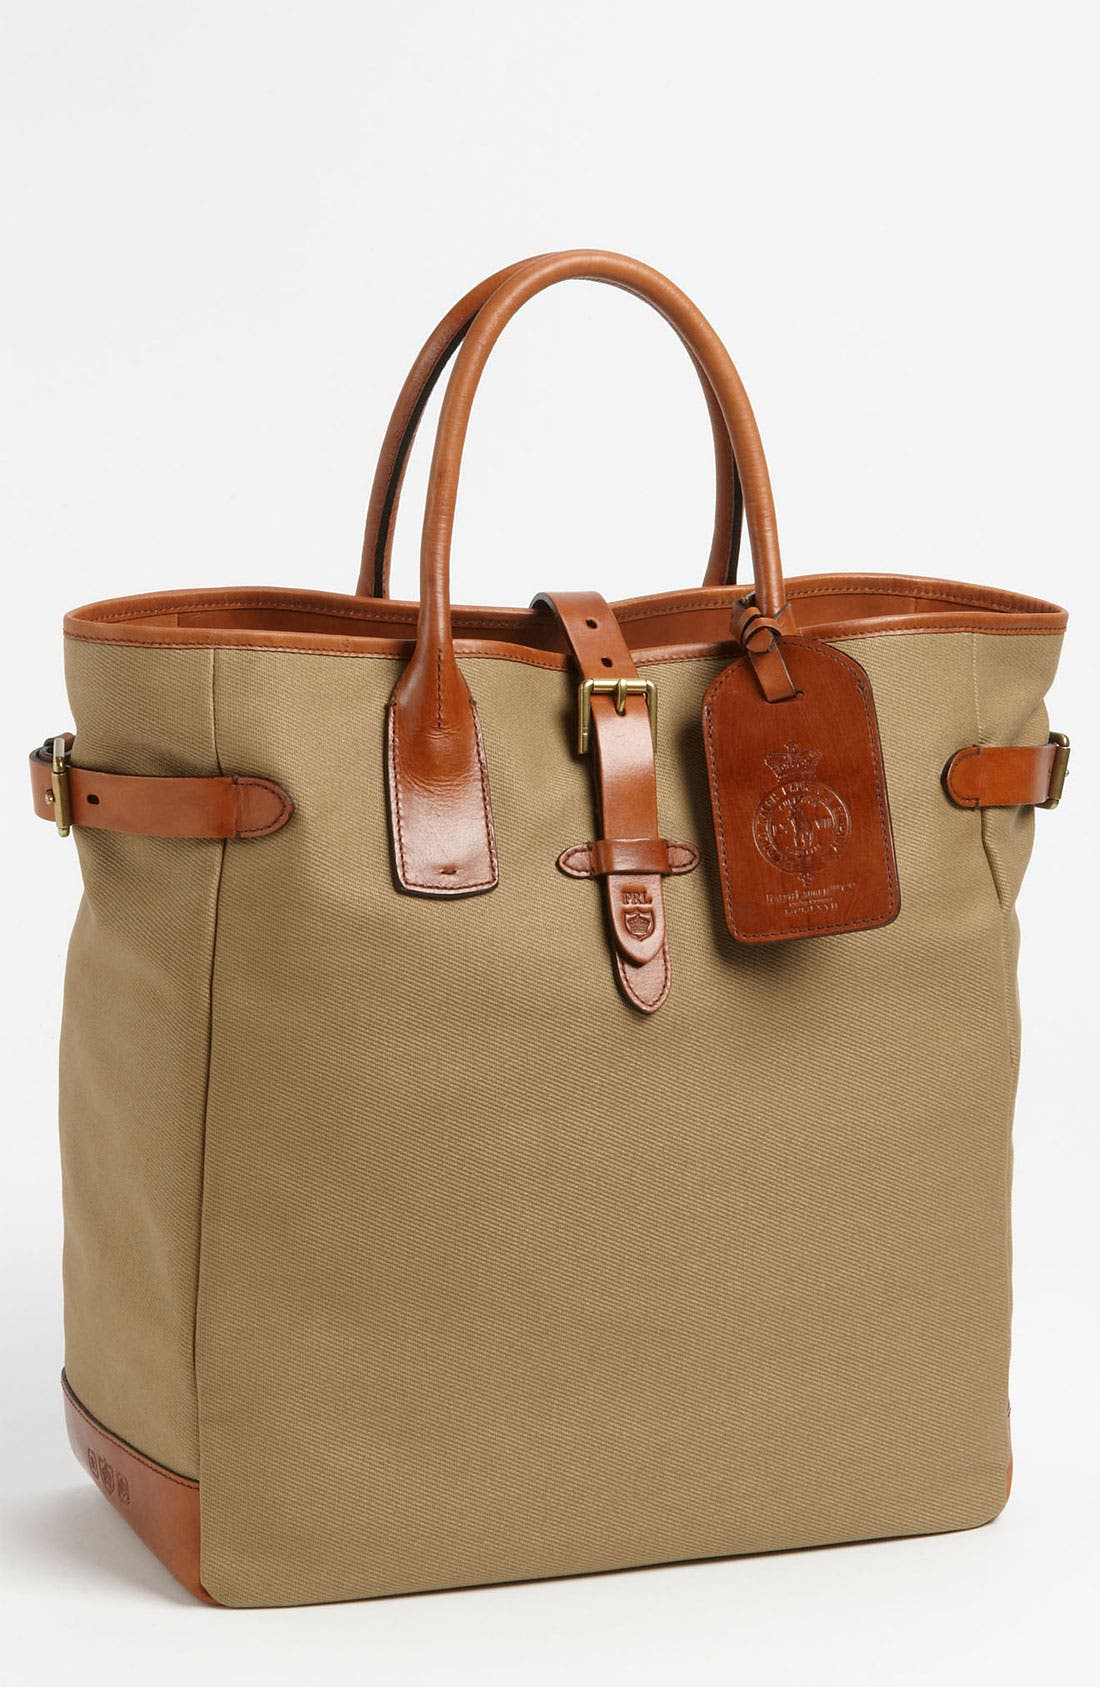 Main Image - Polo Ralph Lauren Canvas Tote Bag